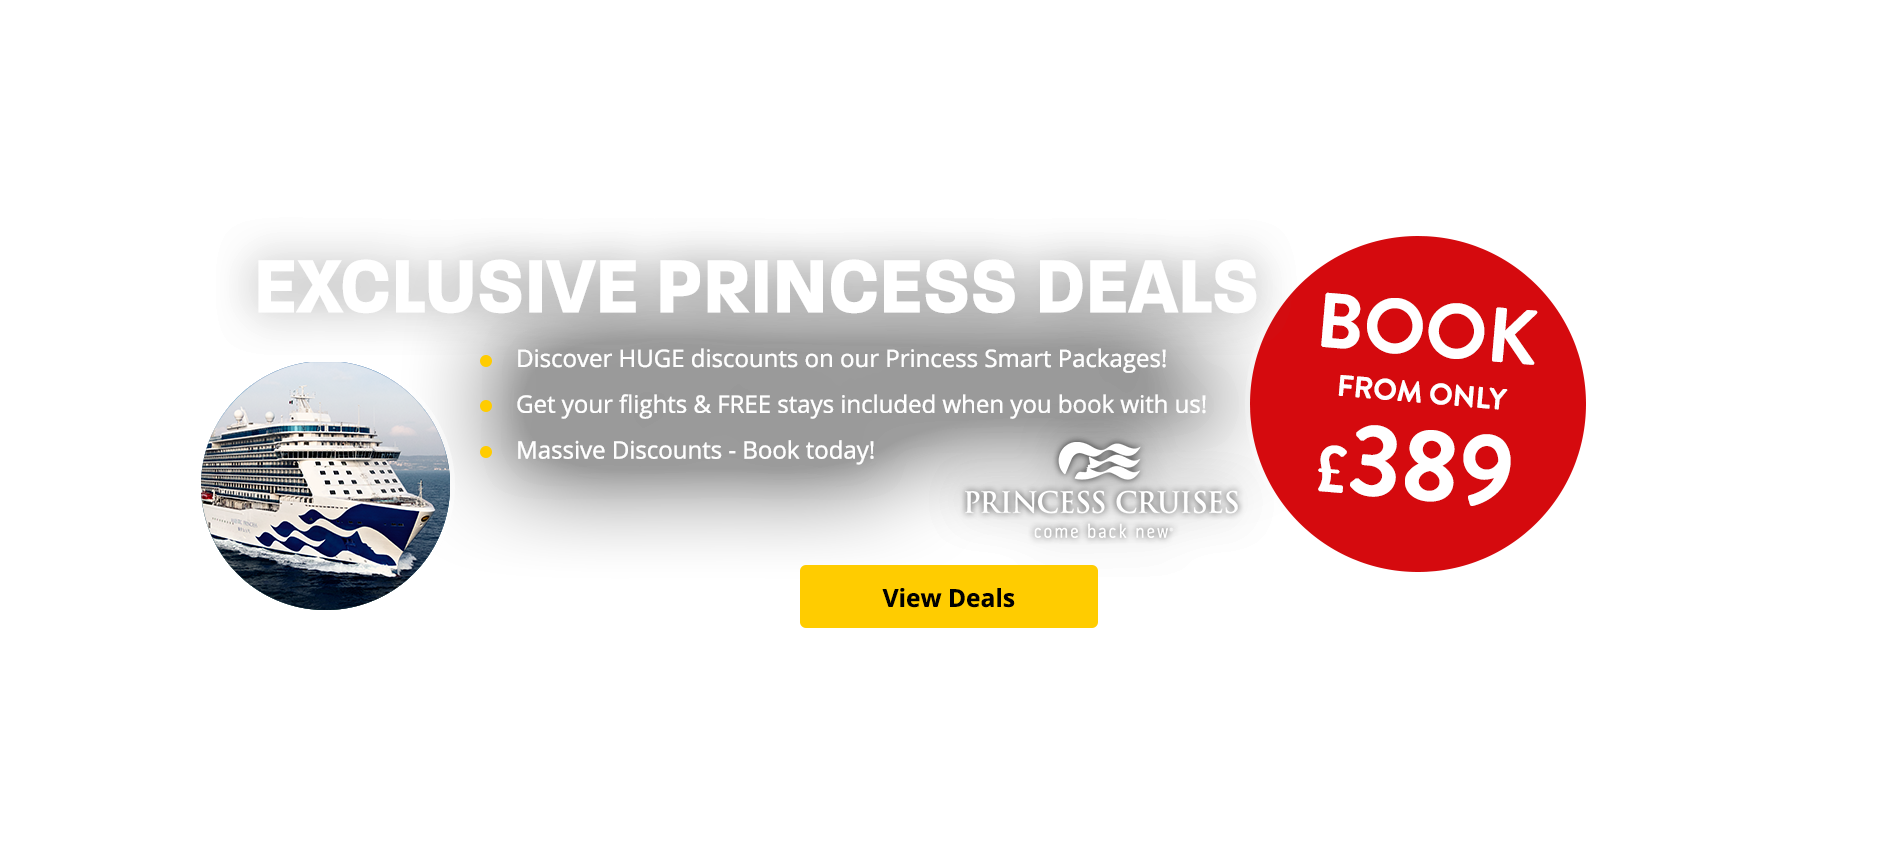 Discover HUGE discounts on our Princess Smart Packages! Get your flights & FREE stays included when you book with us! Massive Discounts - Book today!